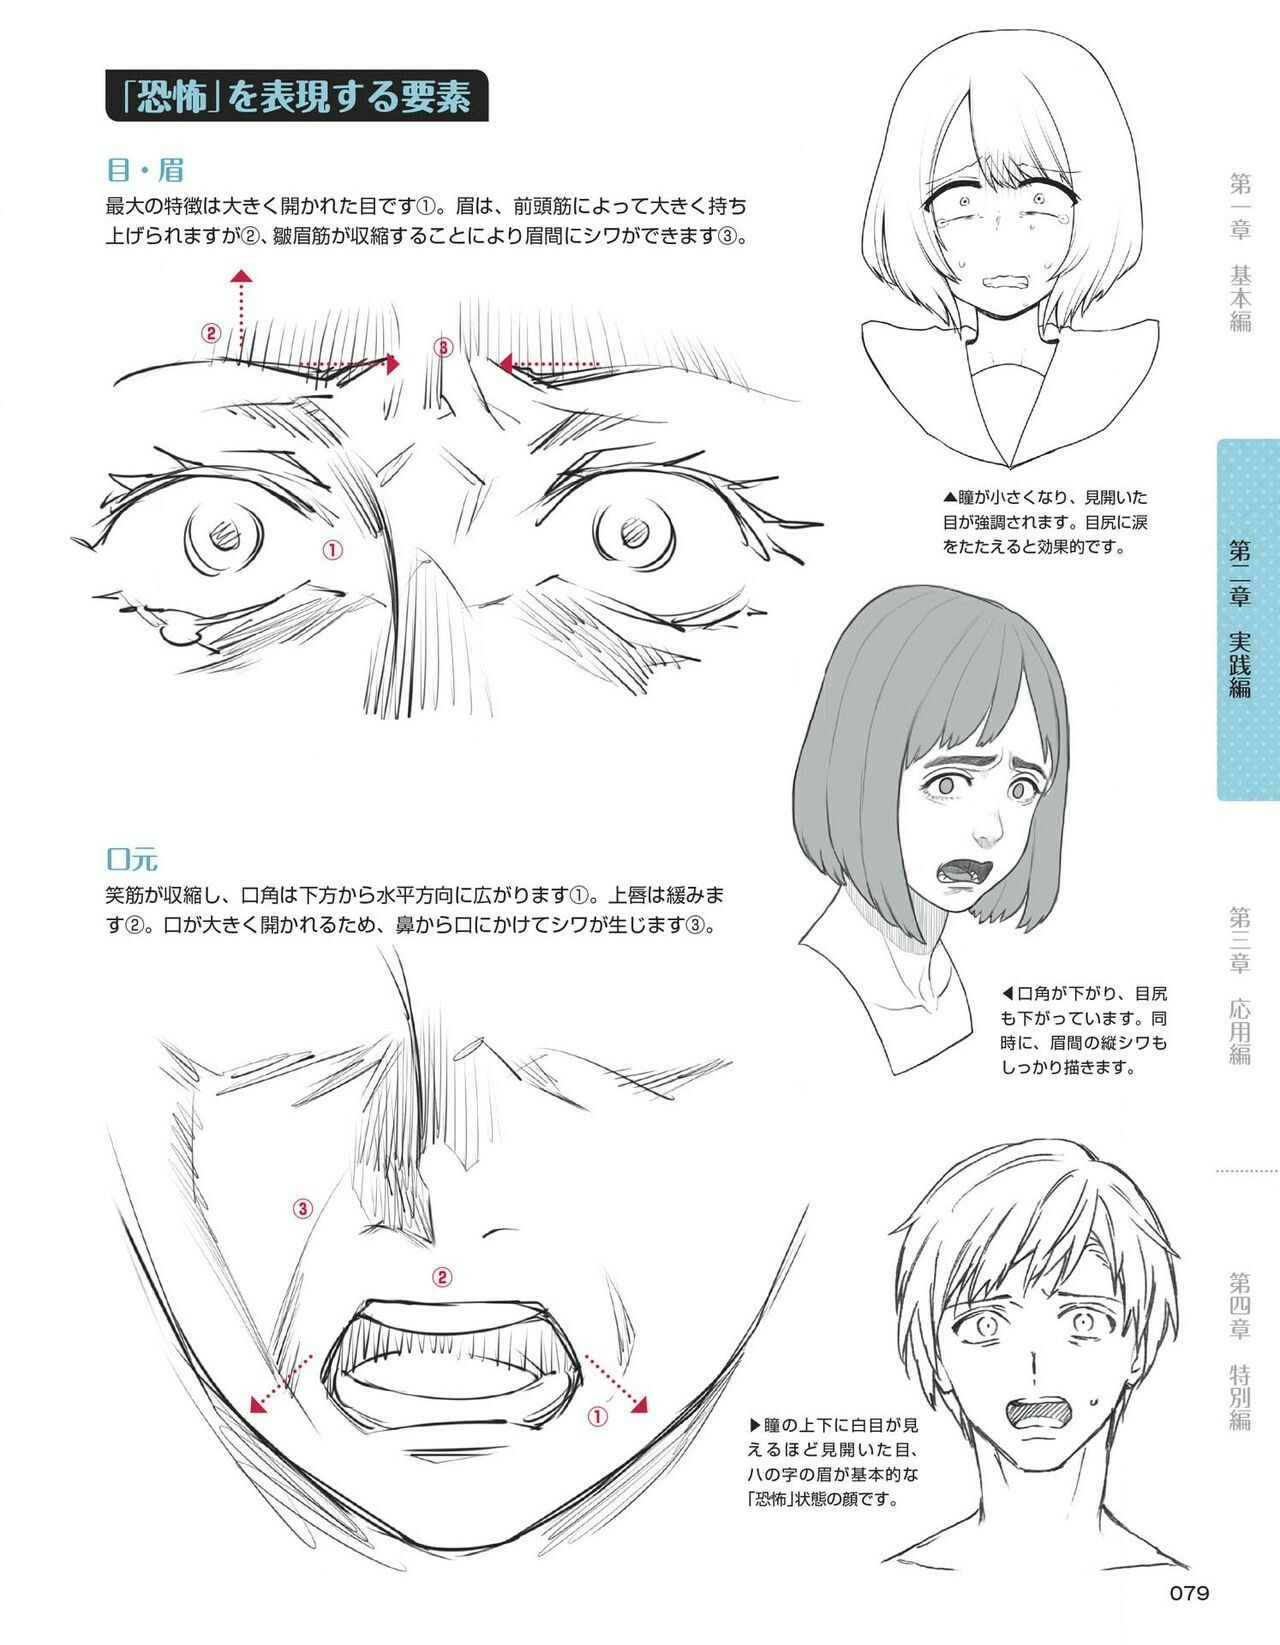 Scared Shocked Expressions Faces Anime Drawing Expressions Face Drawing Reference Scared Face Drawing